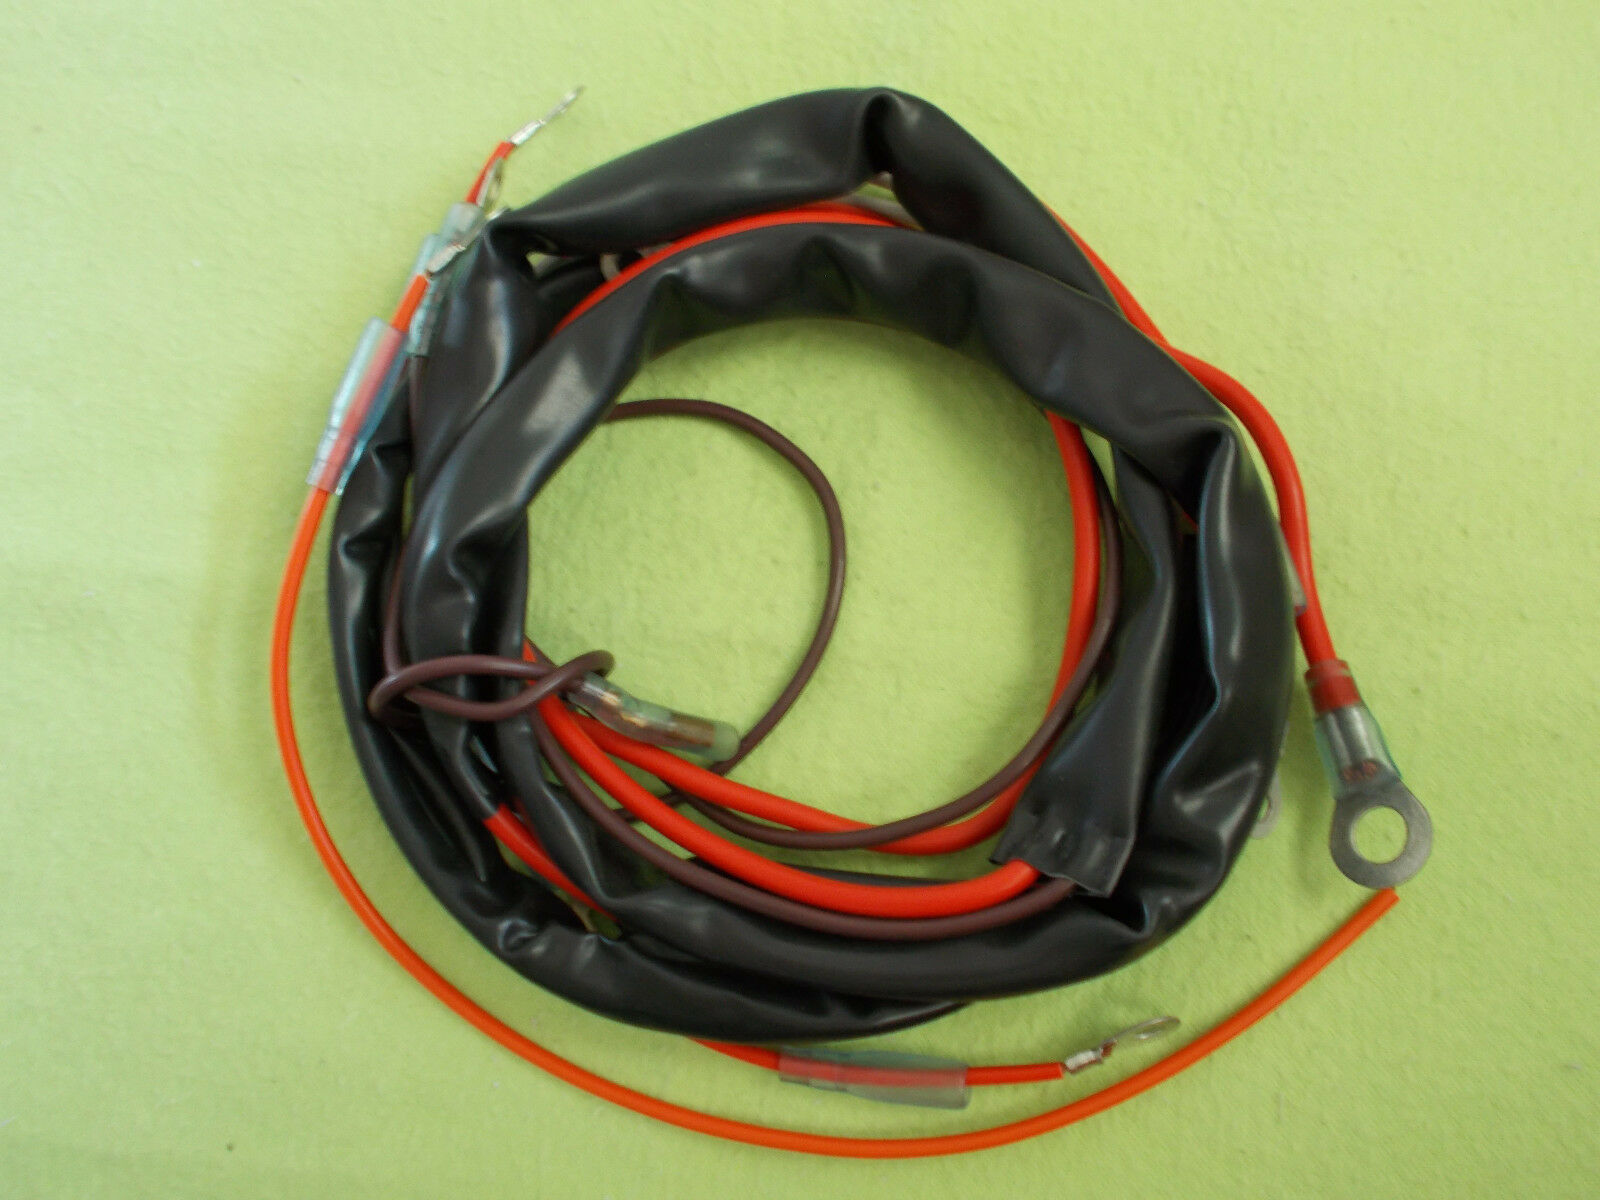 ih farmall 12 volt wiring harness single 1 wire alternator h 300 350 rh ebay com 12 volt wiring harness 1949 ford f1 12 volt wiring harness for 1953 chevy pickup